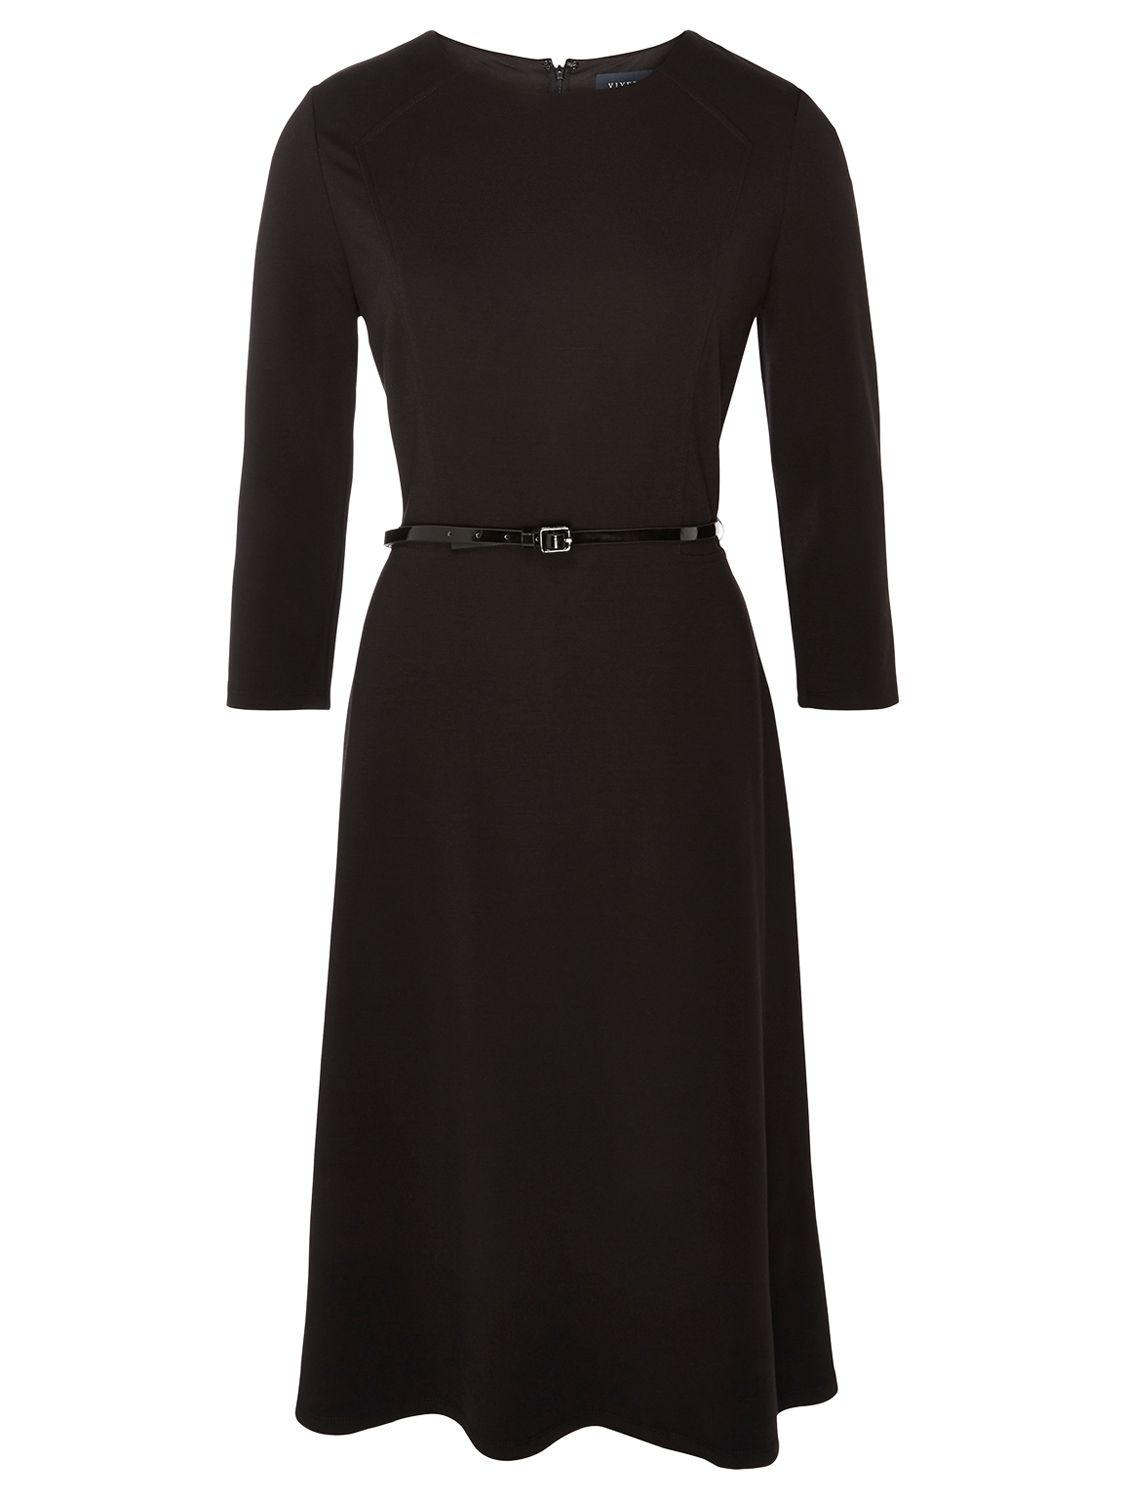 viyella ponte dress black, viyella, ponte, dress, black, 8|12|14, women, womens dresses, special offers, womenswear offers, latest reductions, womens dresses offers, up to 30% off selected viyella, 1797290